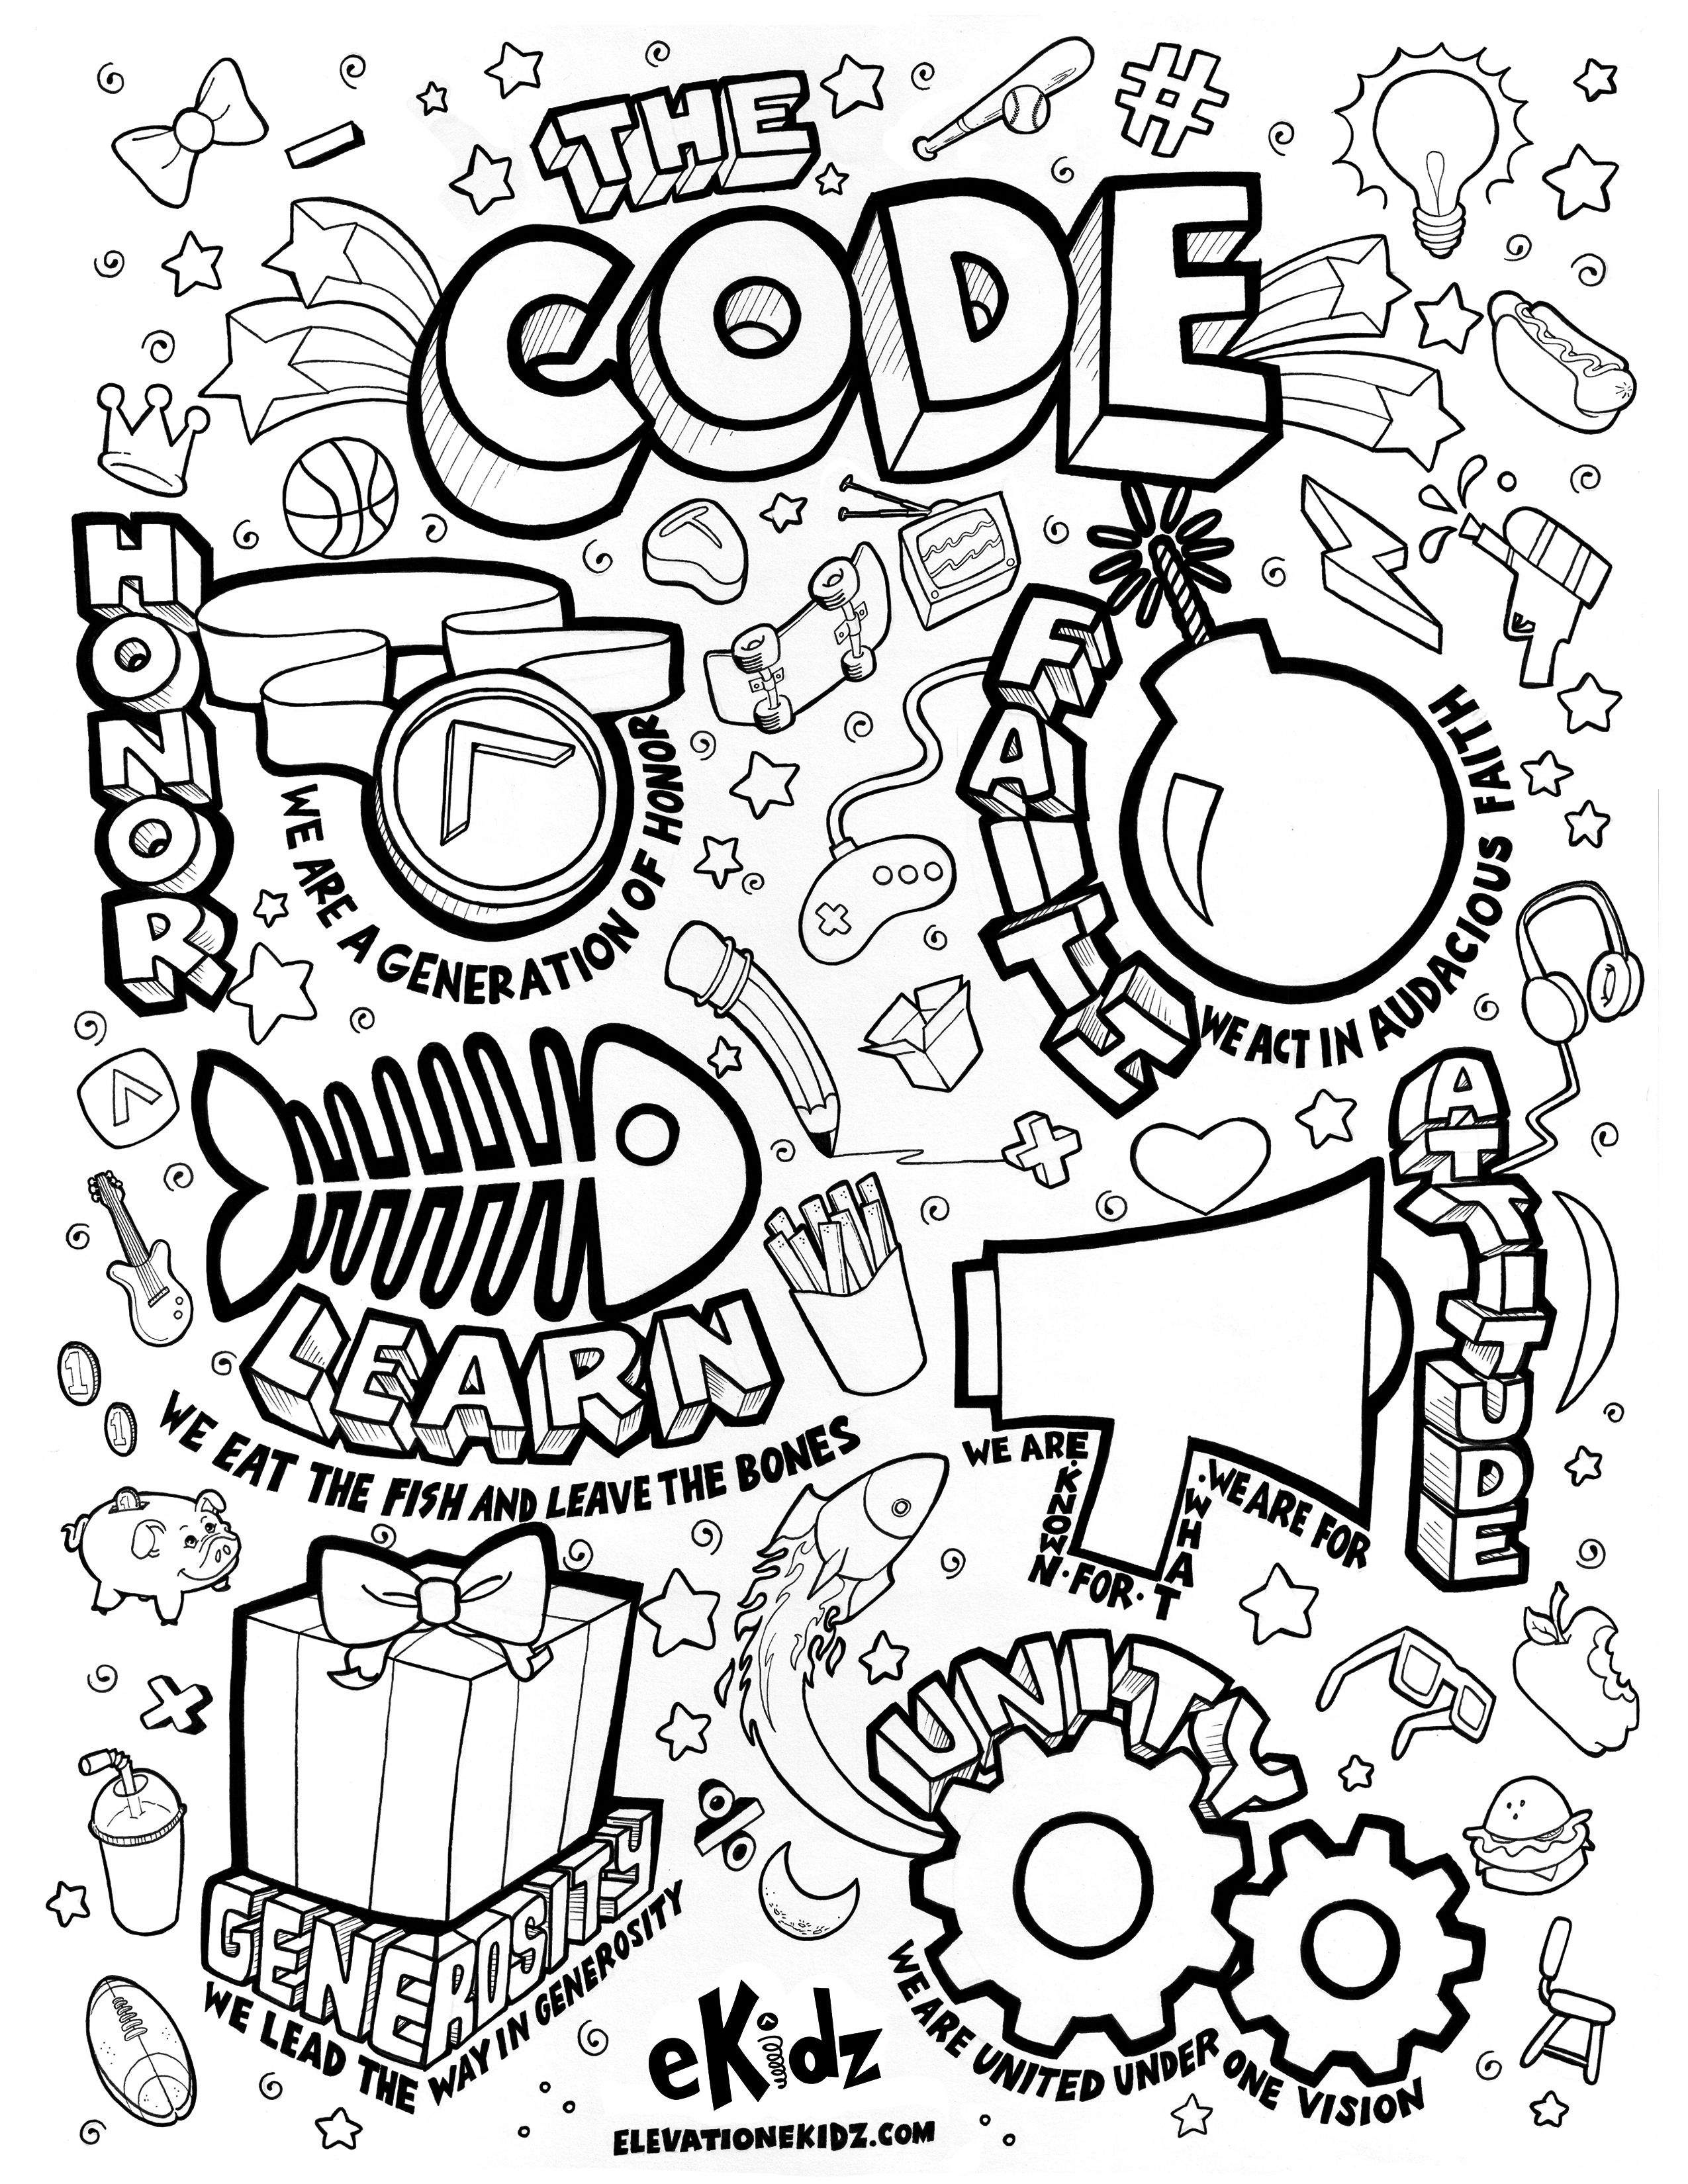 Pin by Dina Duvall on Coloring - Kid\'s Bible Class | Pinterest | Doodles